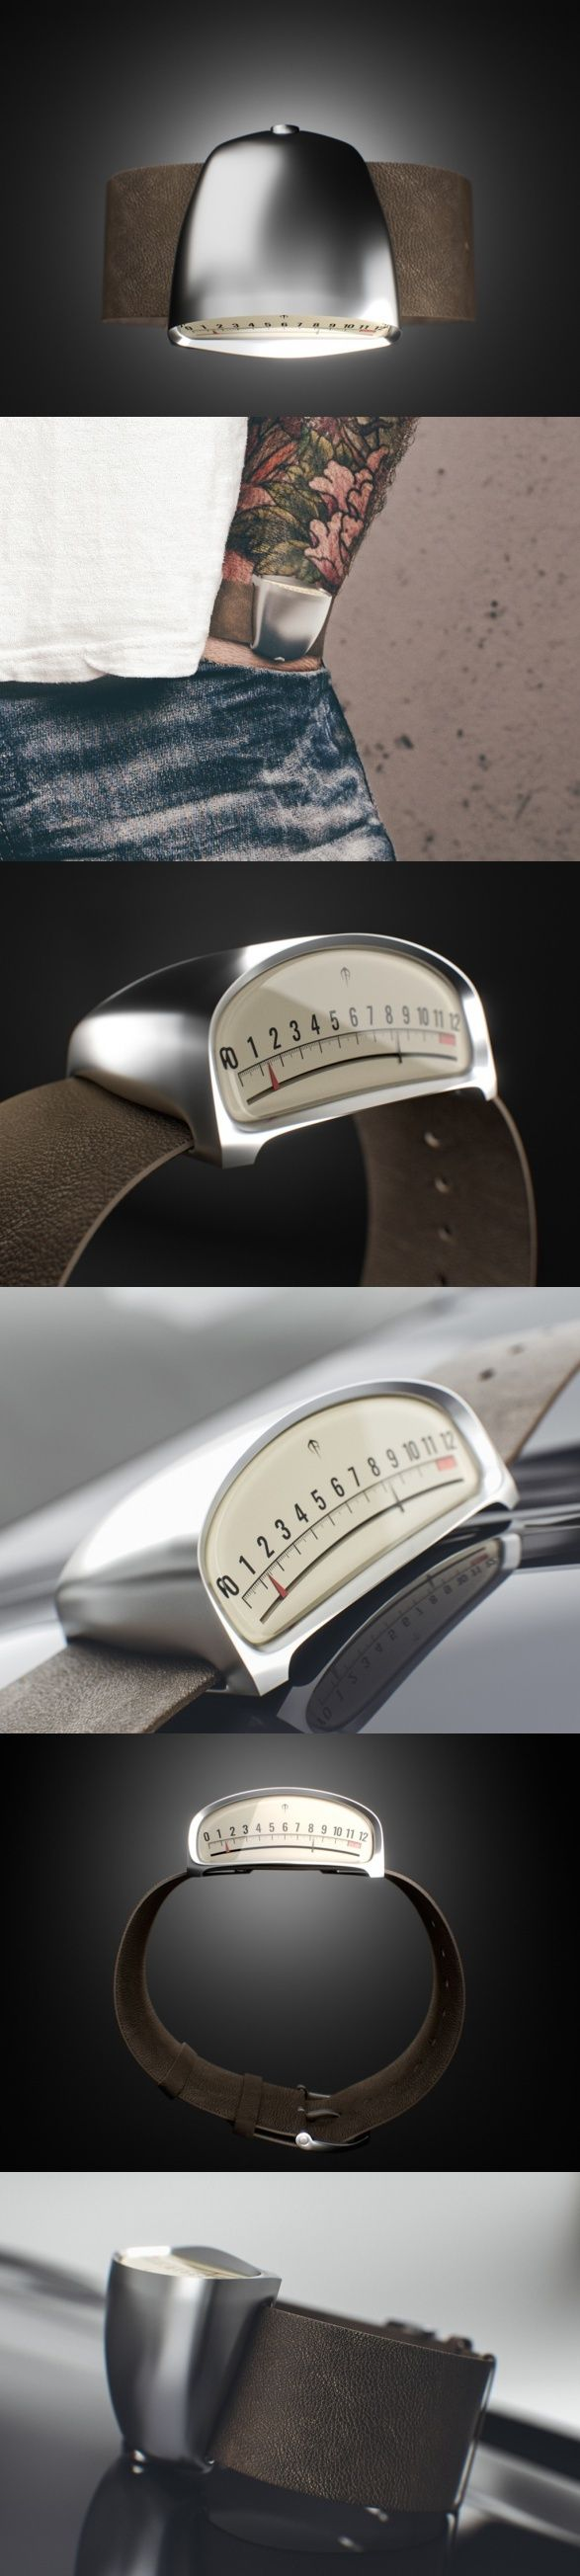 The #Drive #watch is NOT one of those. The design takes #inspiration from #vintage #models from a time when cars were considered not just #transportation but art. #Watch #Luxury #Modern #Style #YankoDesign